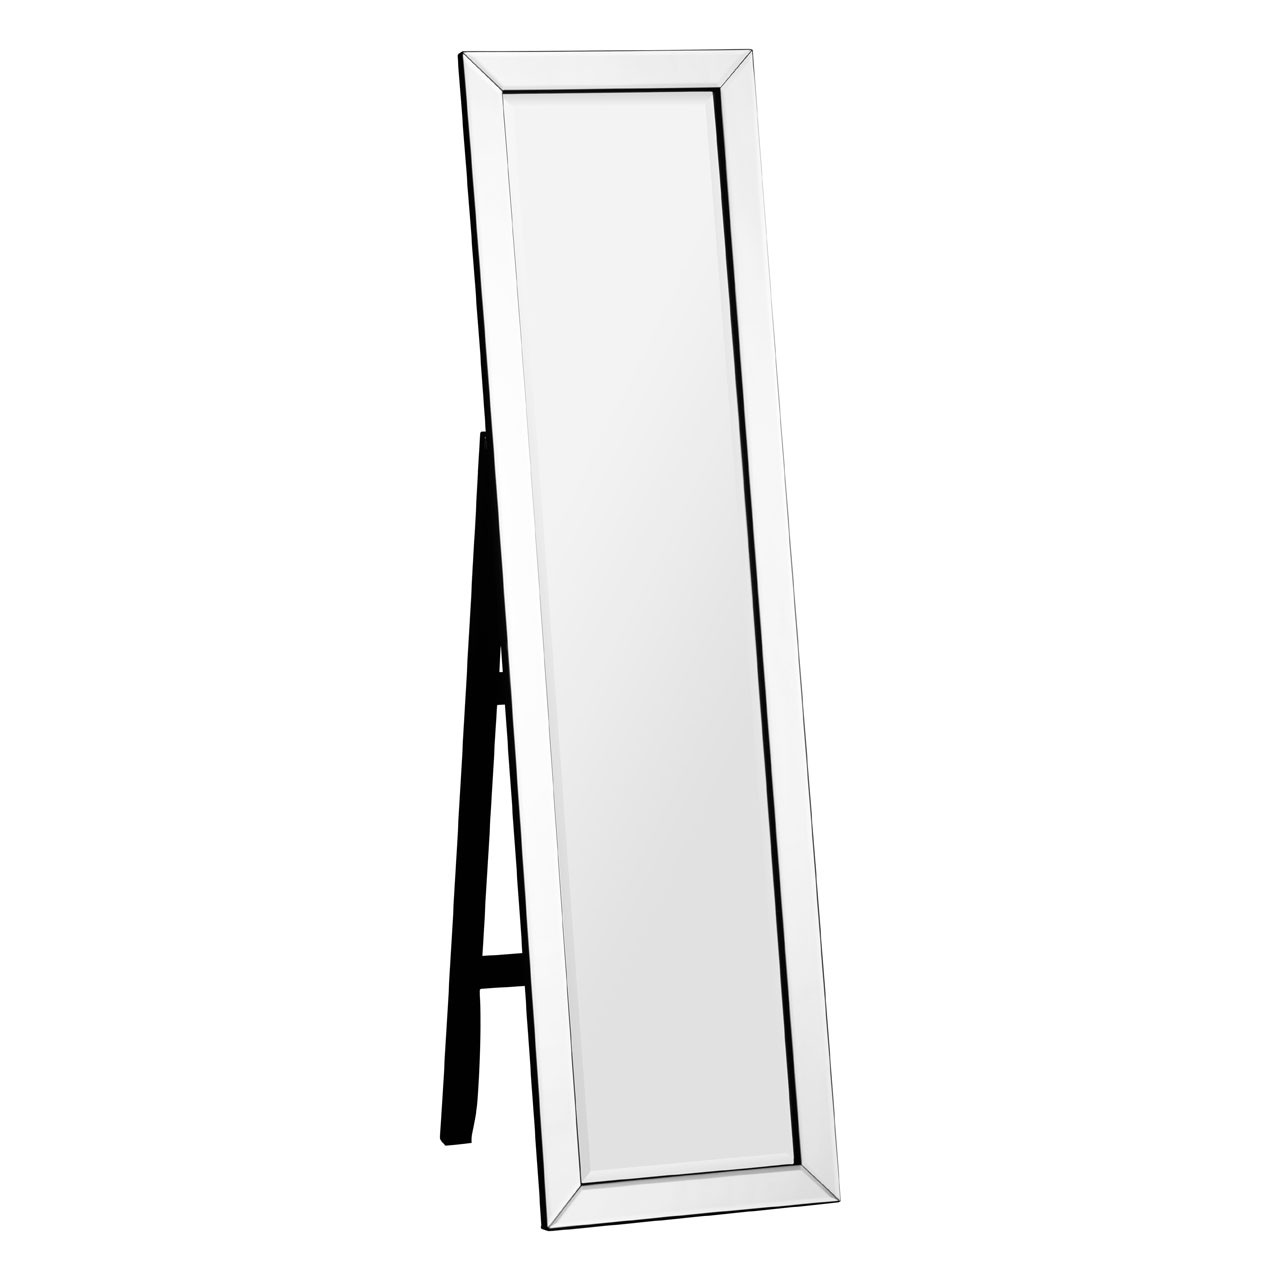 Prime Furnishing Floor Standing Mirror, MDF Frame